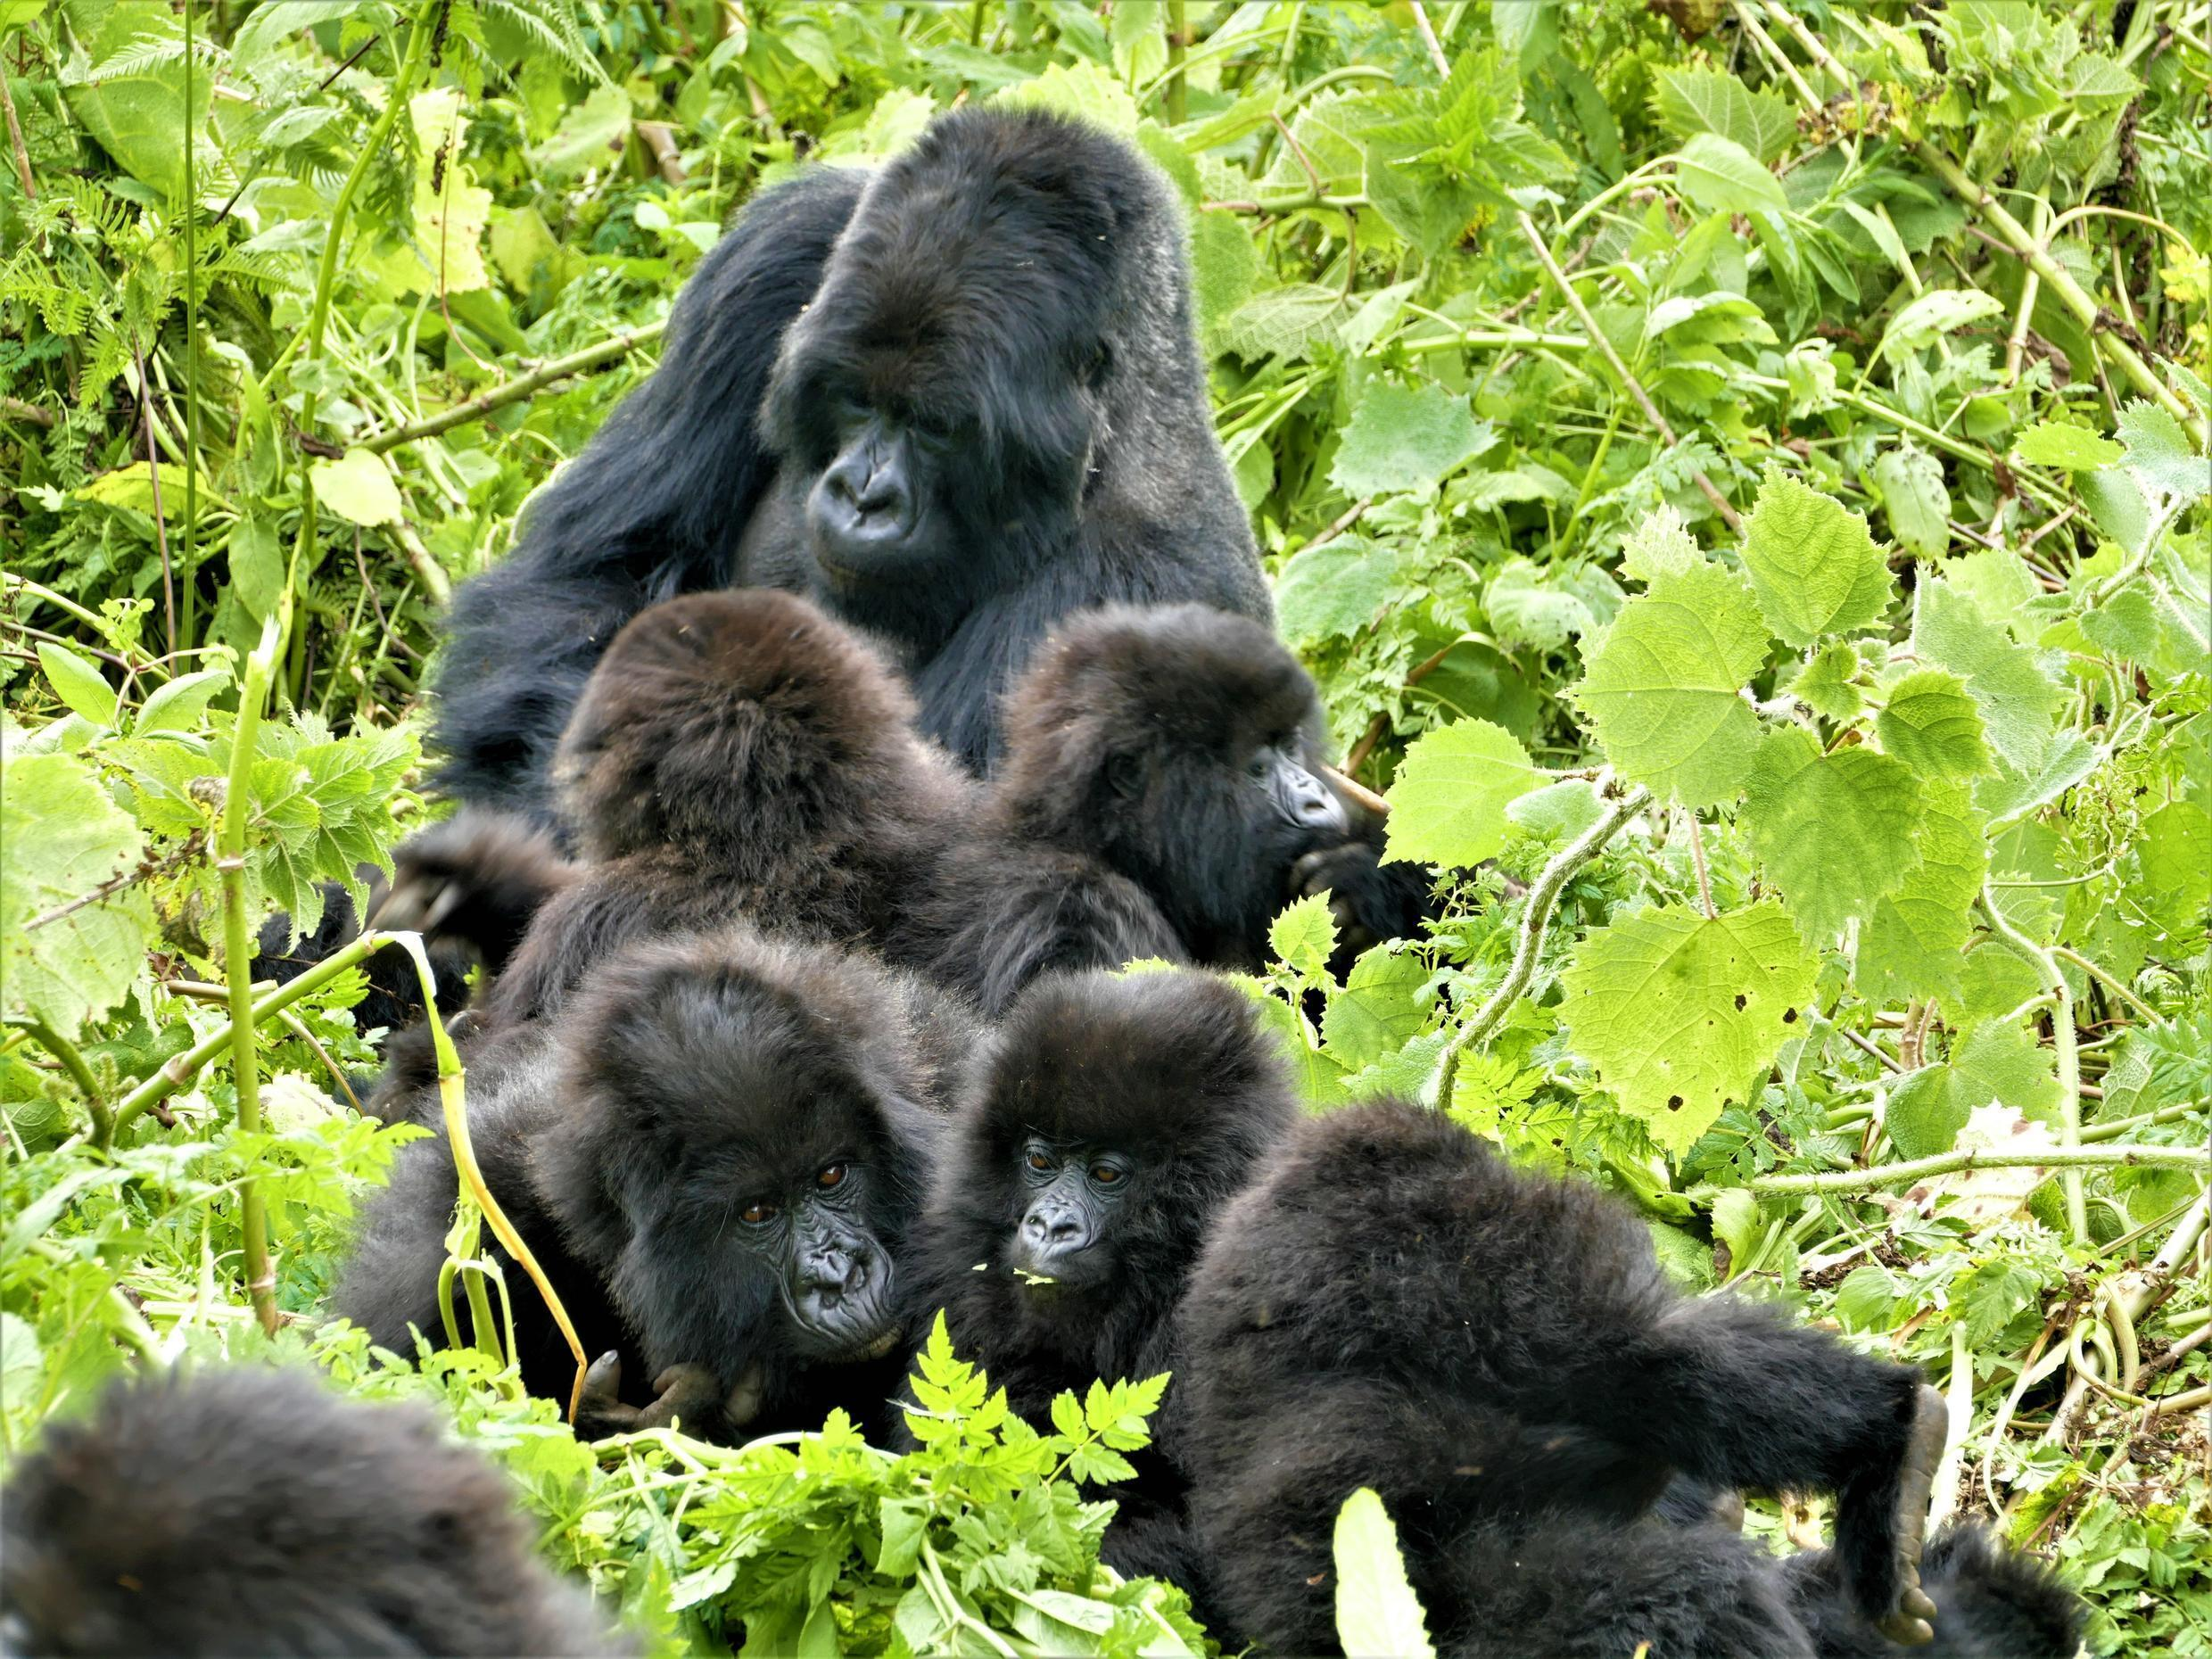 Dominant male gorilla Kubaha babysitting his young charges, including orphans, in Rwanda, 2017.